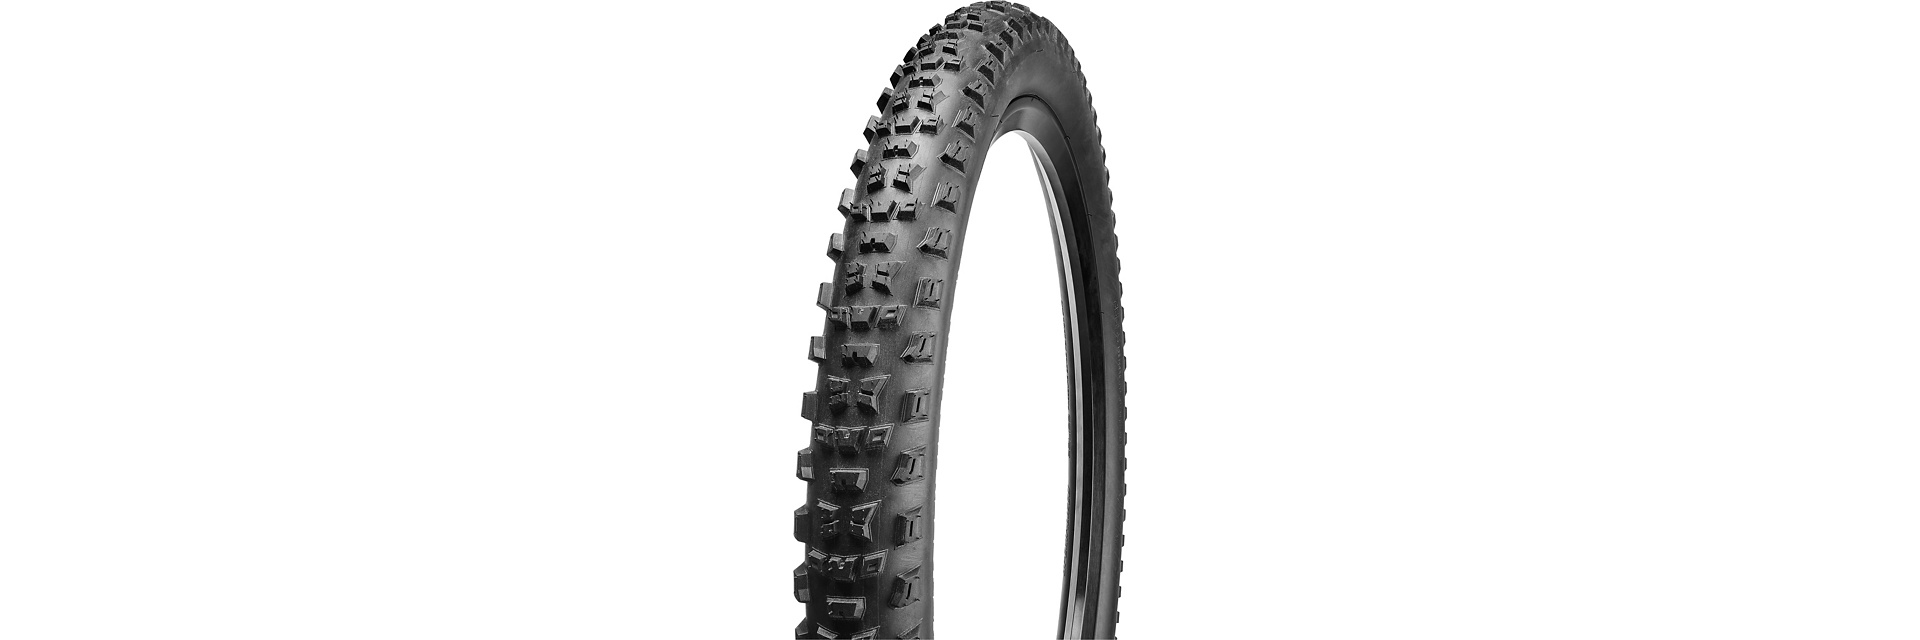 Specialized PURGATORY GRID 2BR TIRE 27.5/650BX3.0